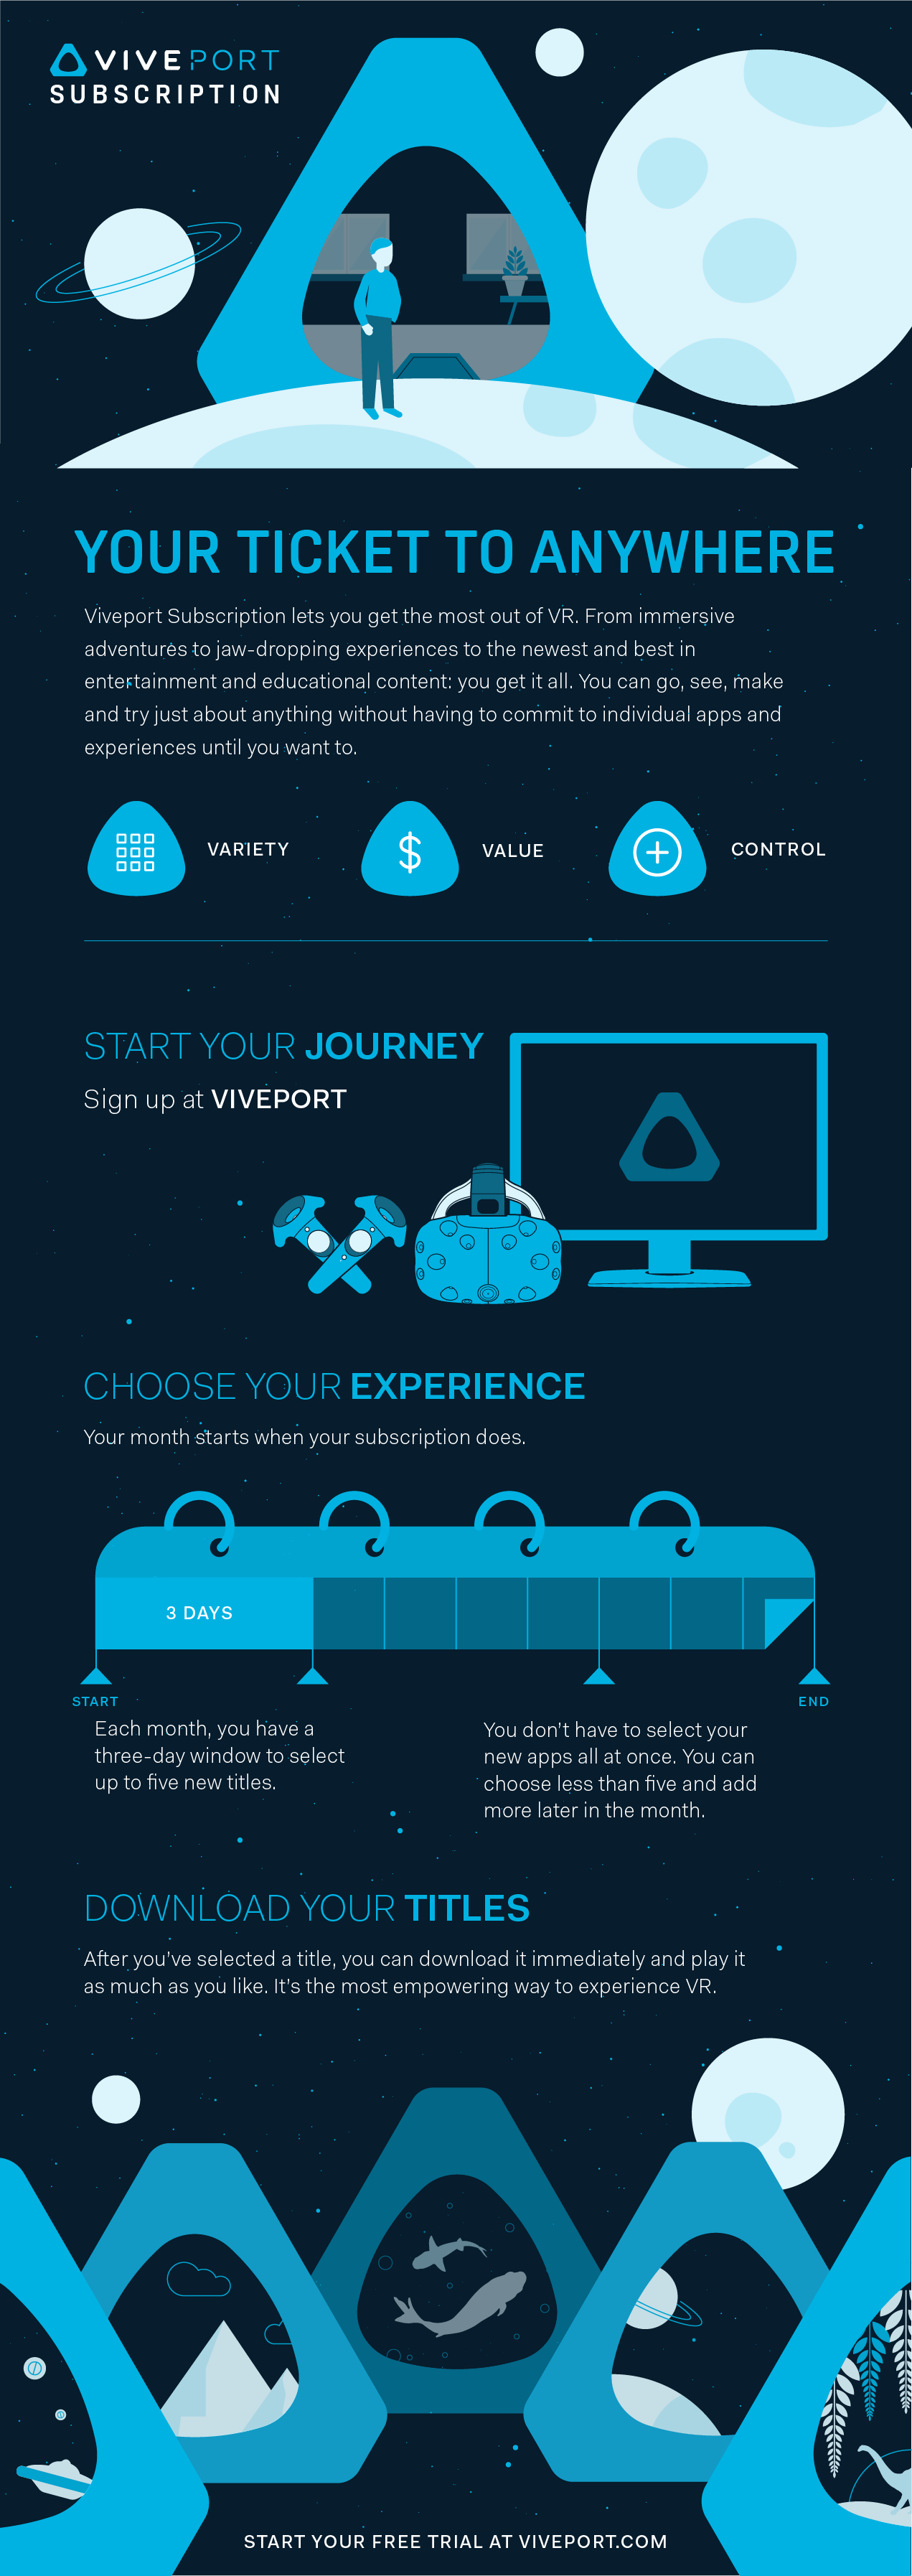 viveport subscription infographic